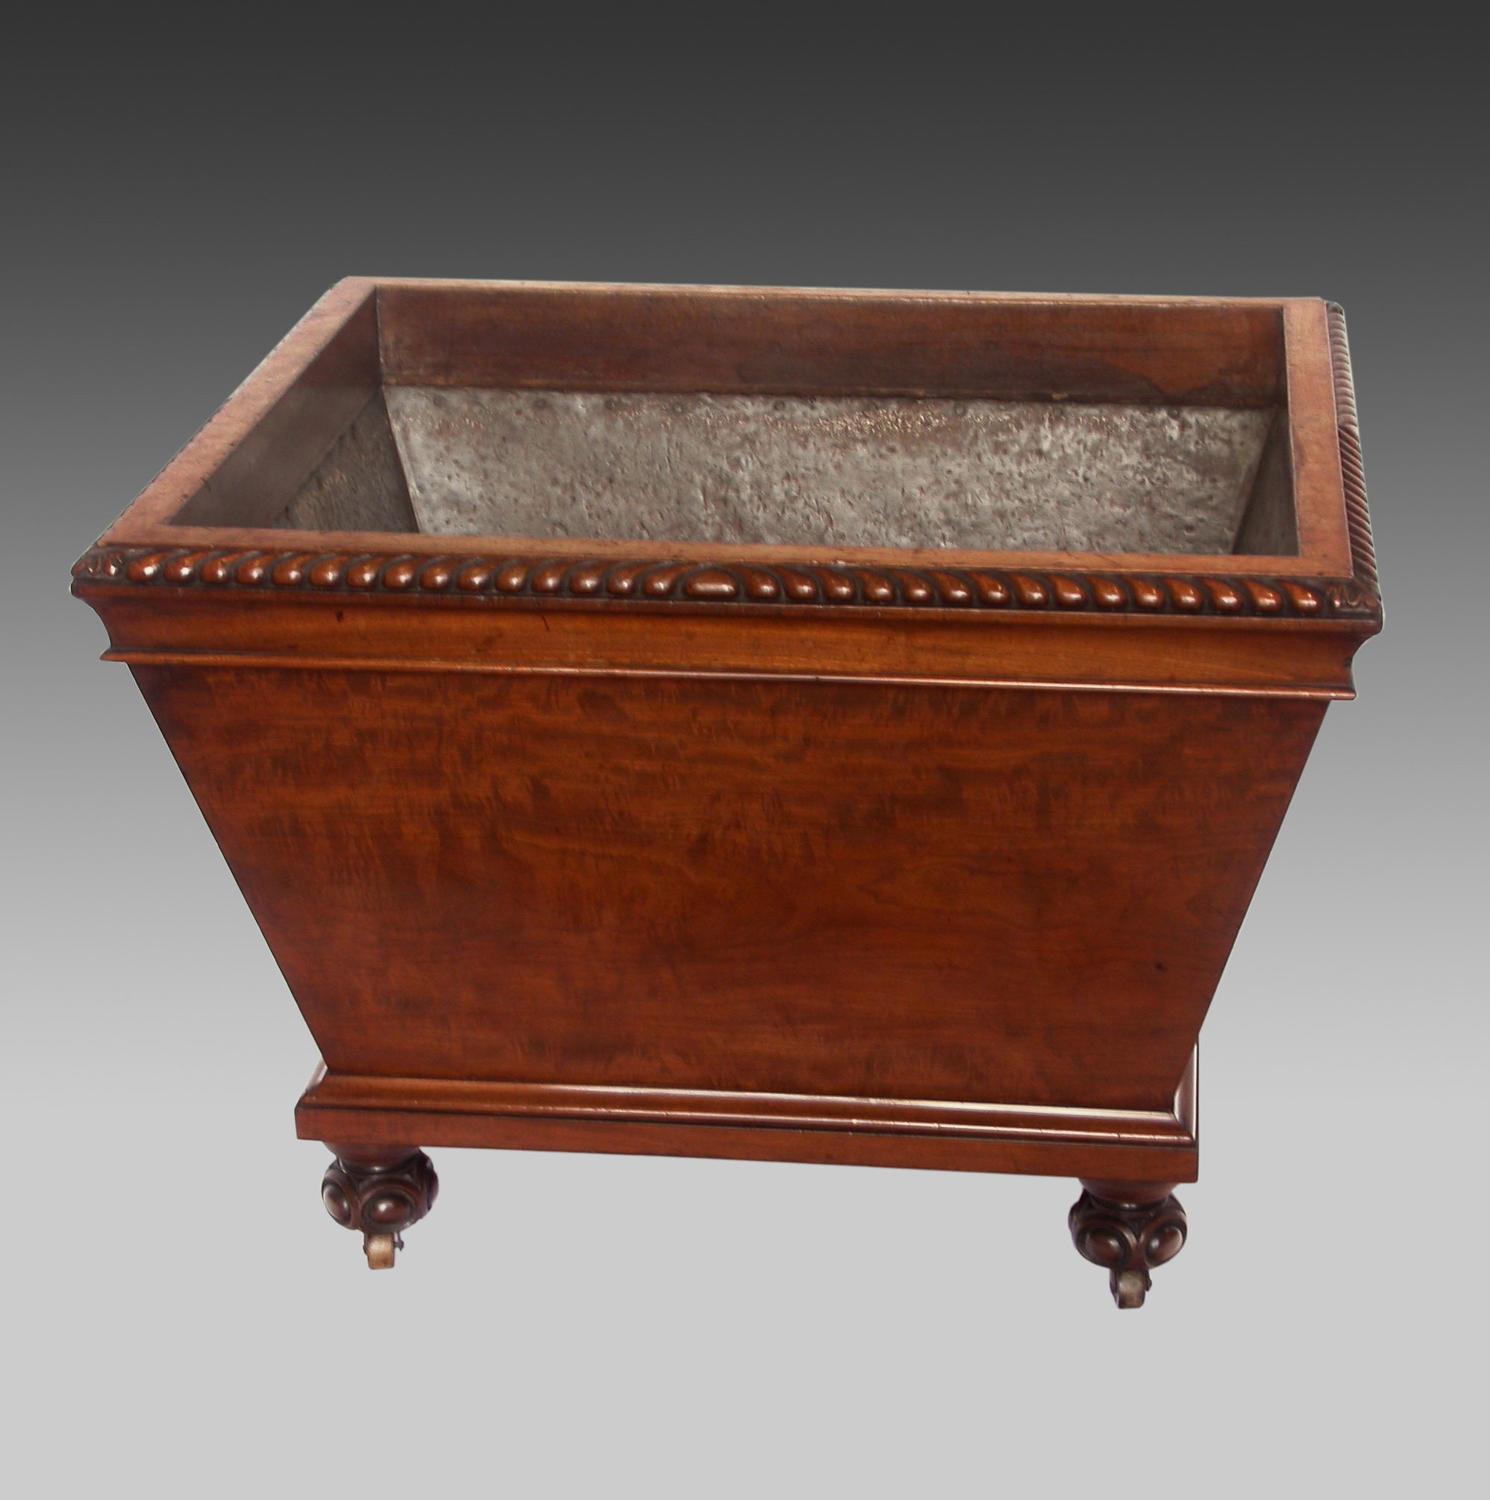 19th century mahogany wine cooler